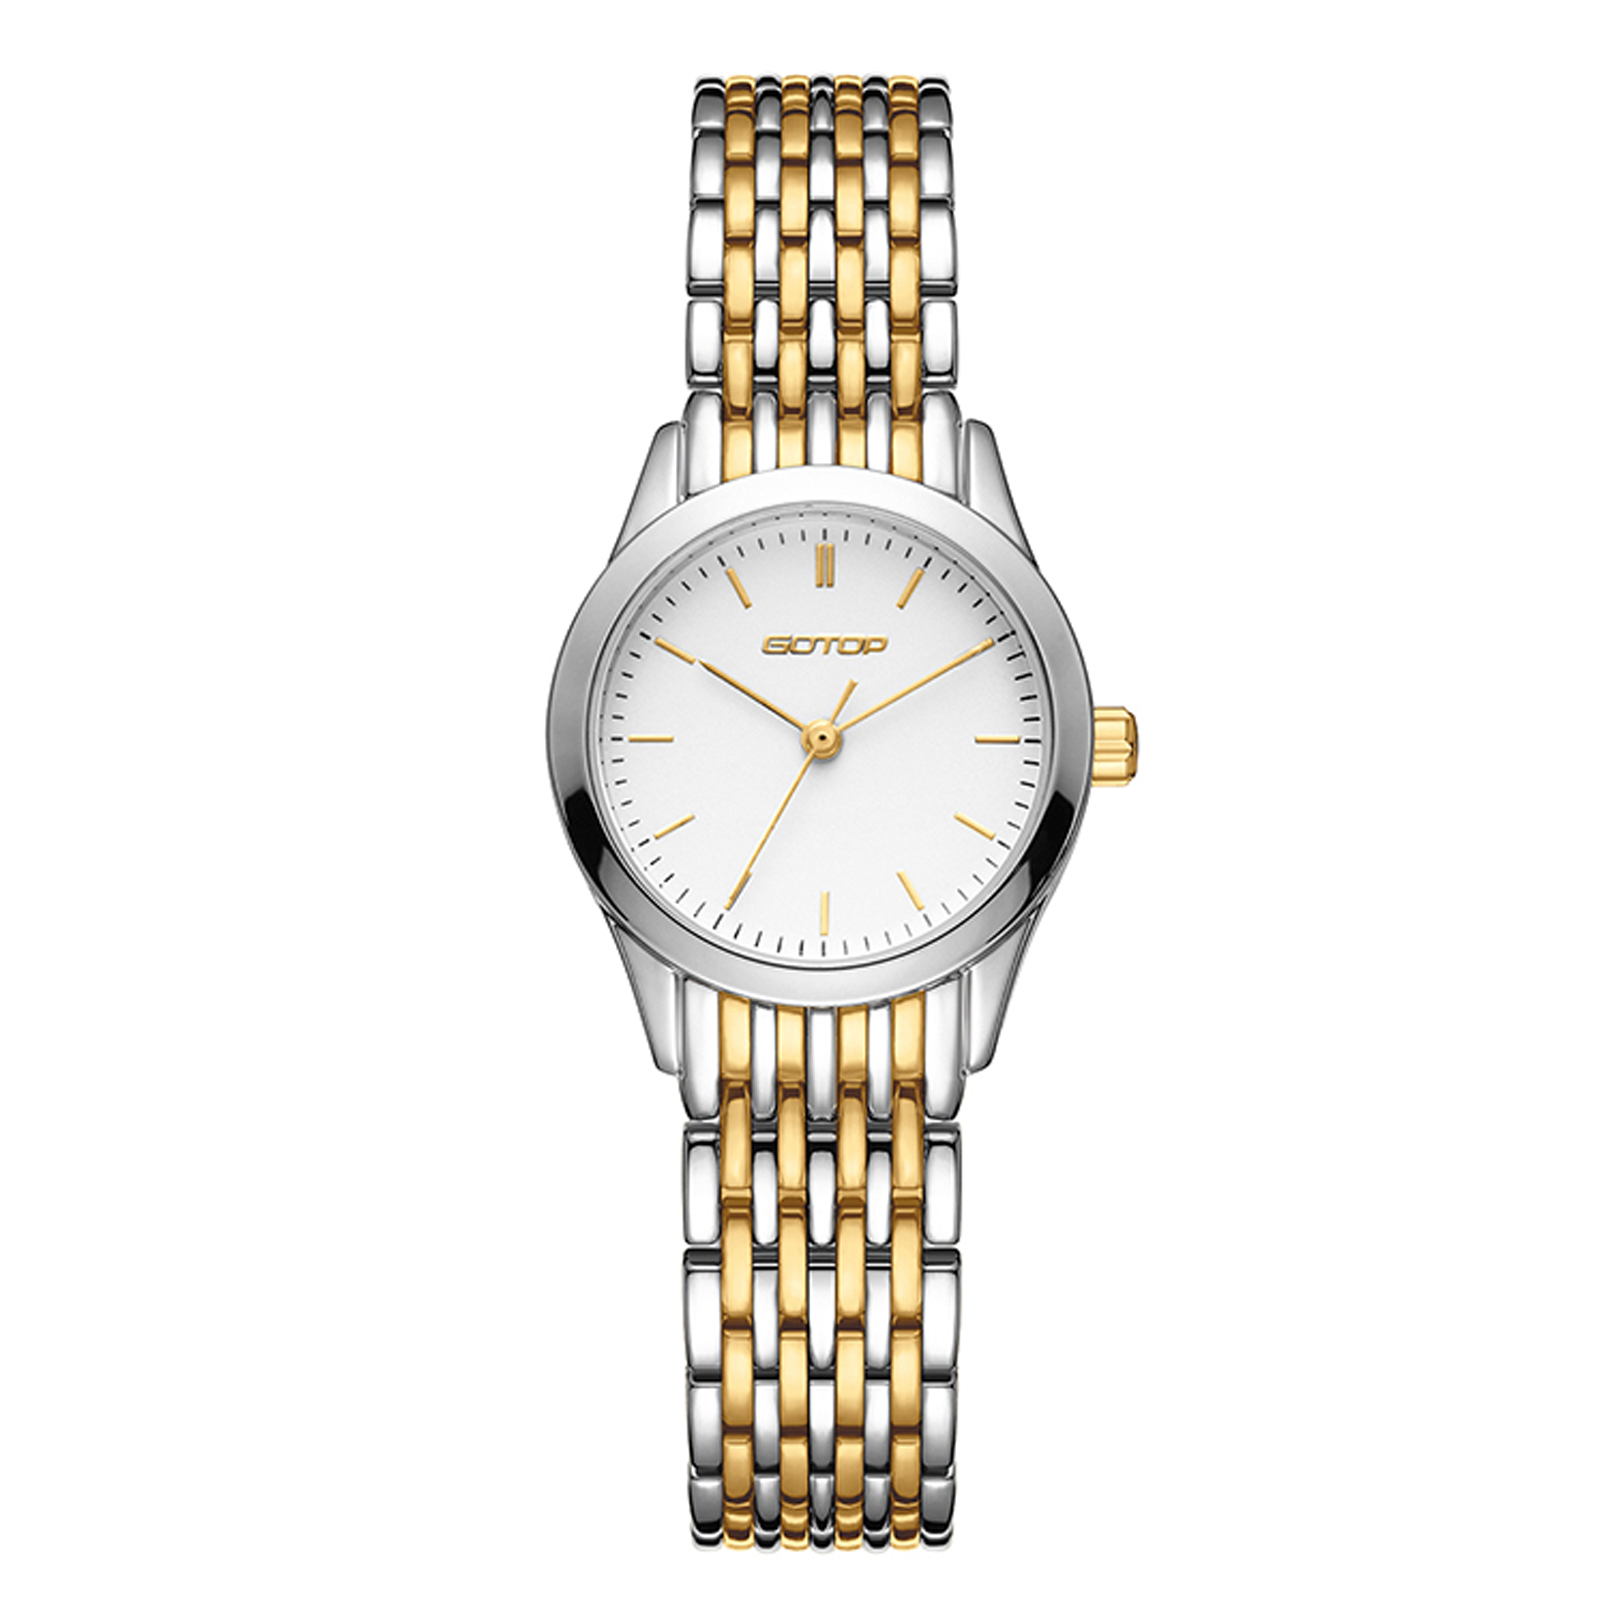 Two Tone Gold And Silver Stainless Steel Women's Watch